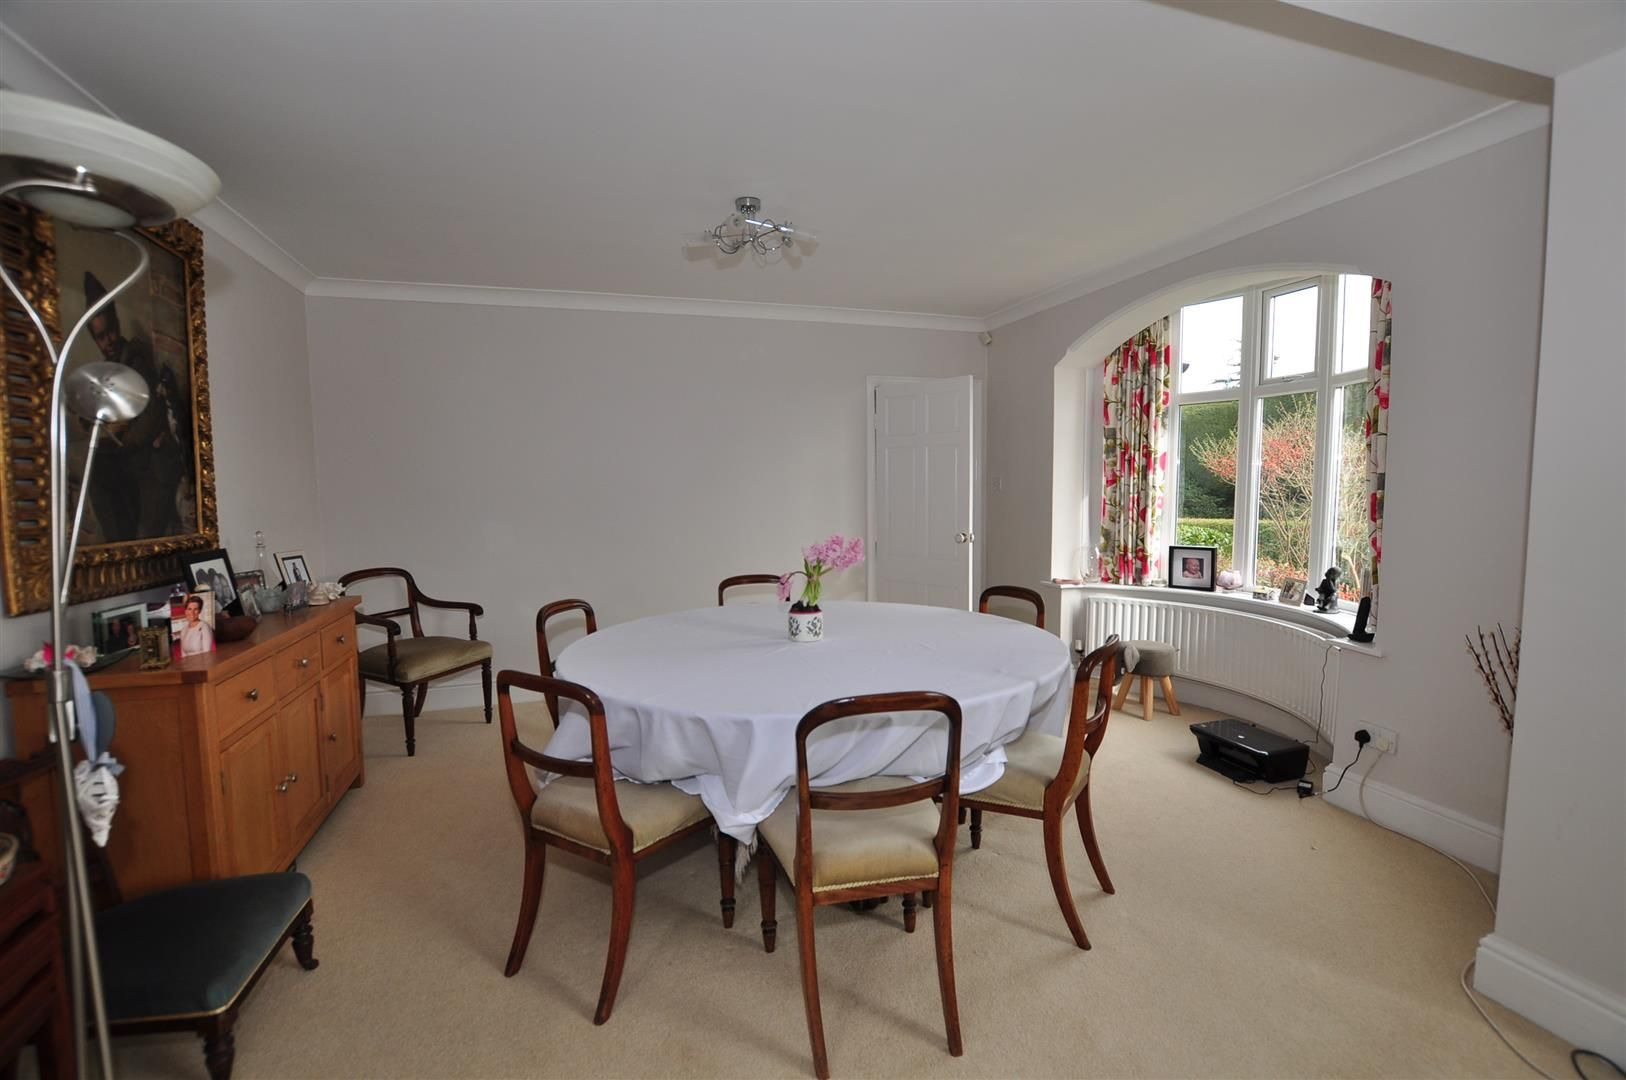 4 bed detached for sale in Hagley  - Property Image 3